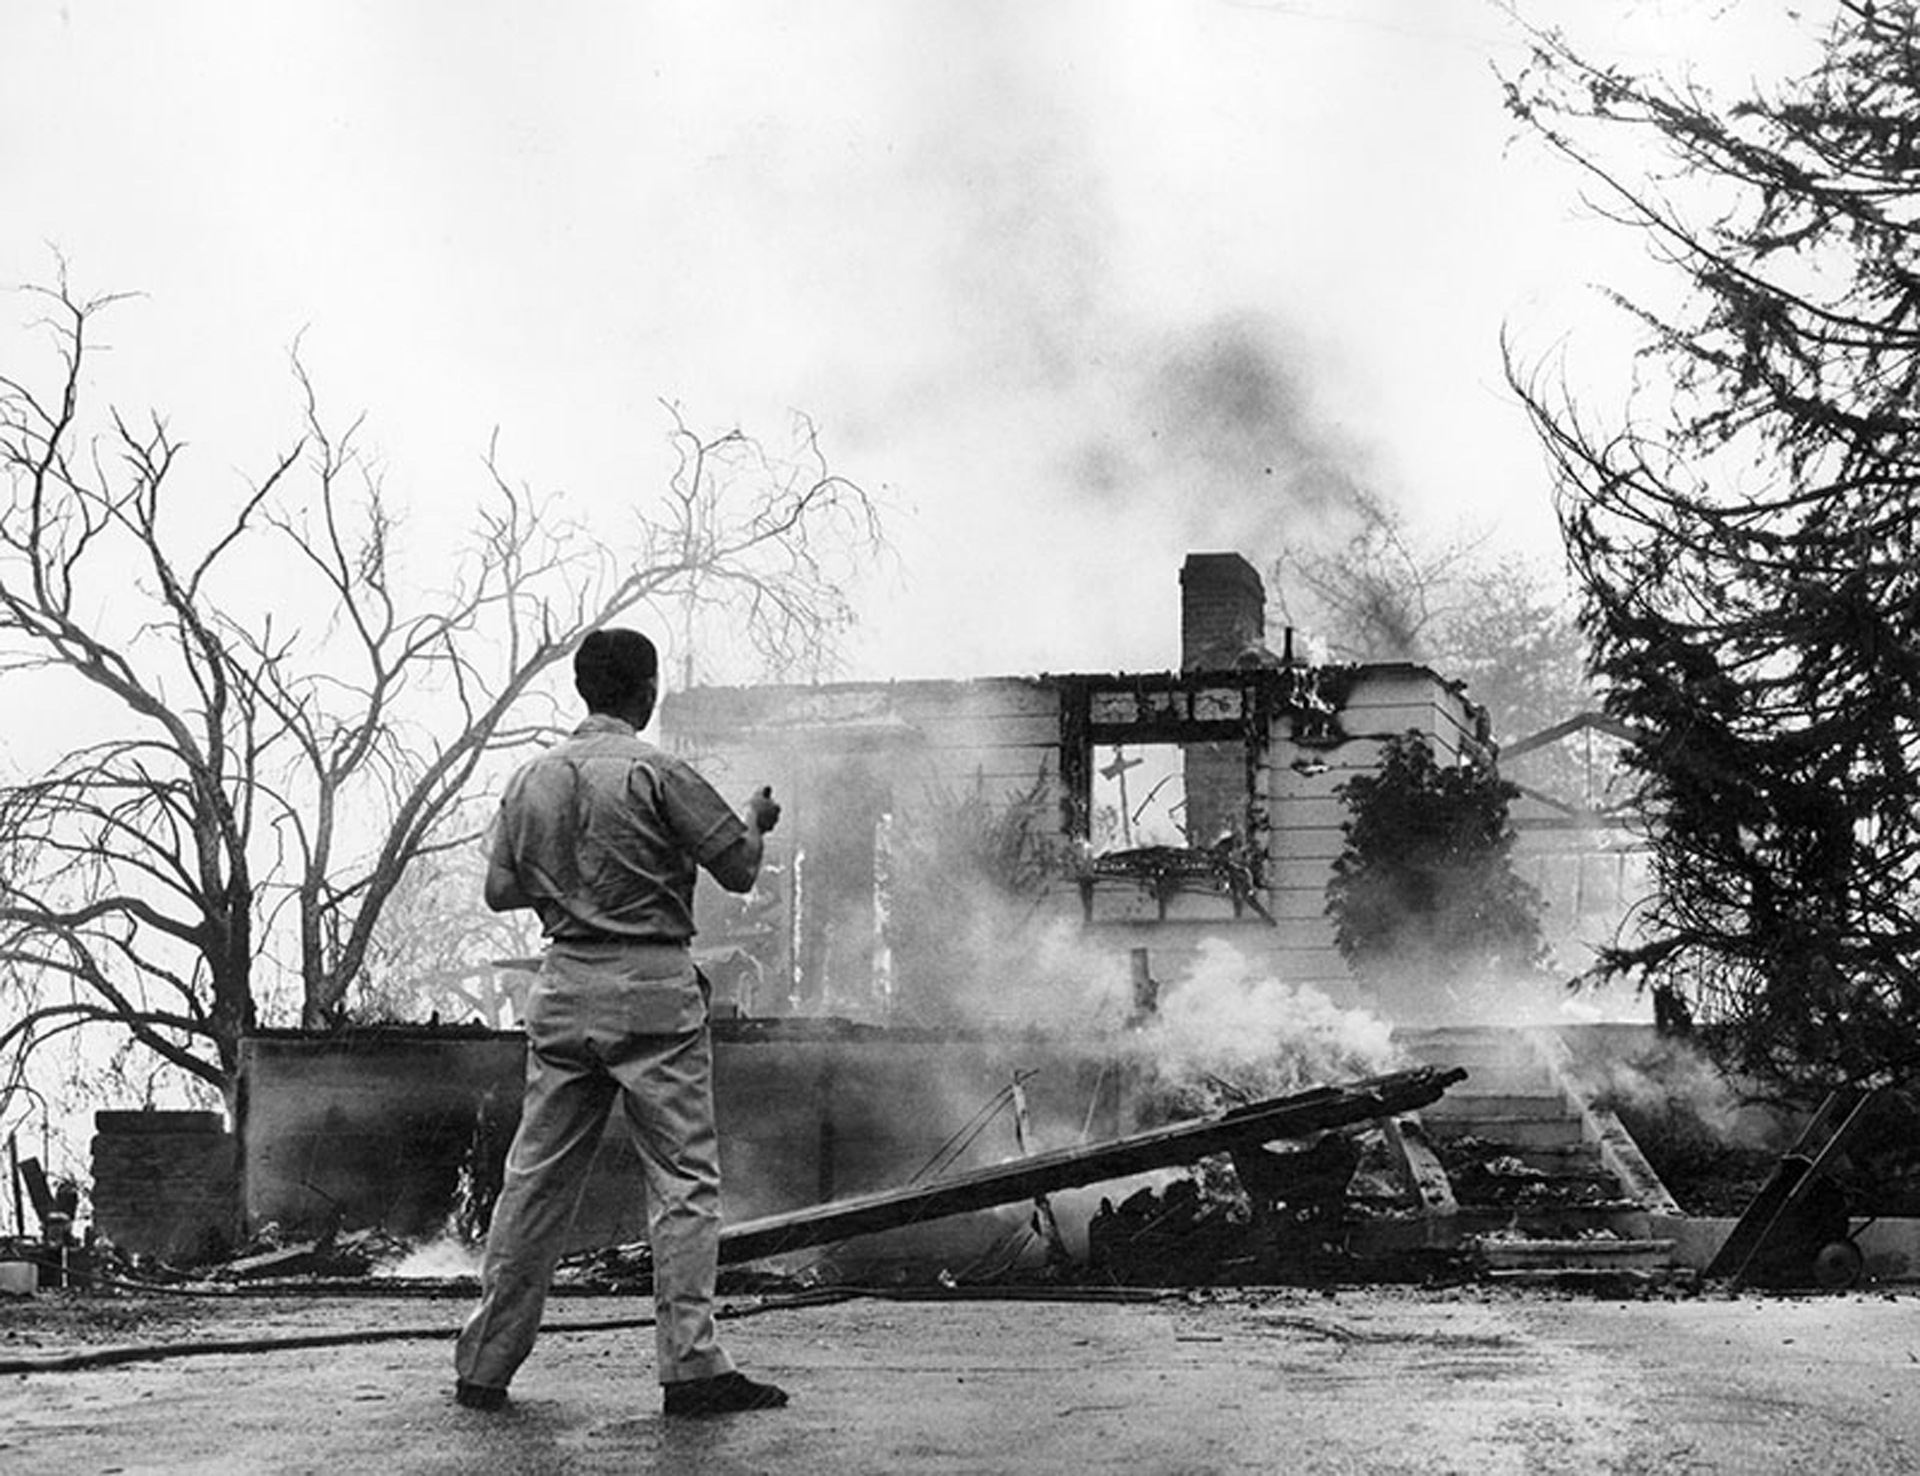 After the Fire, 1959